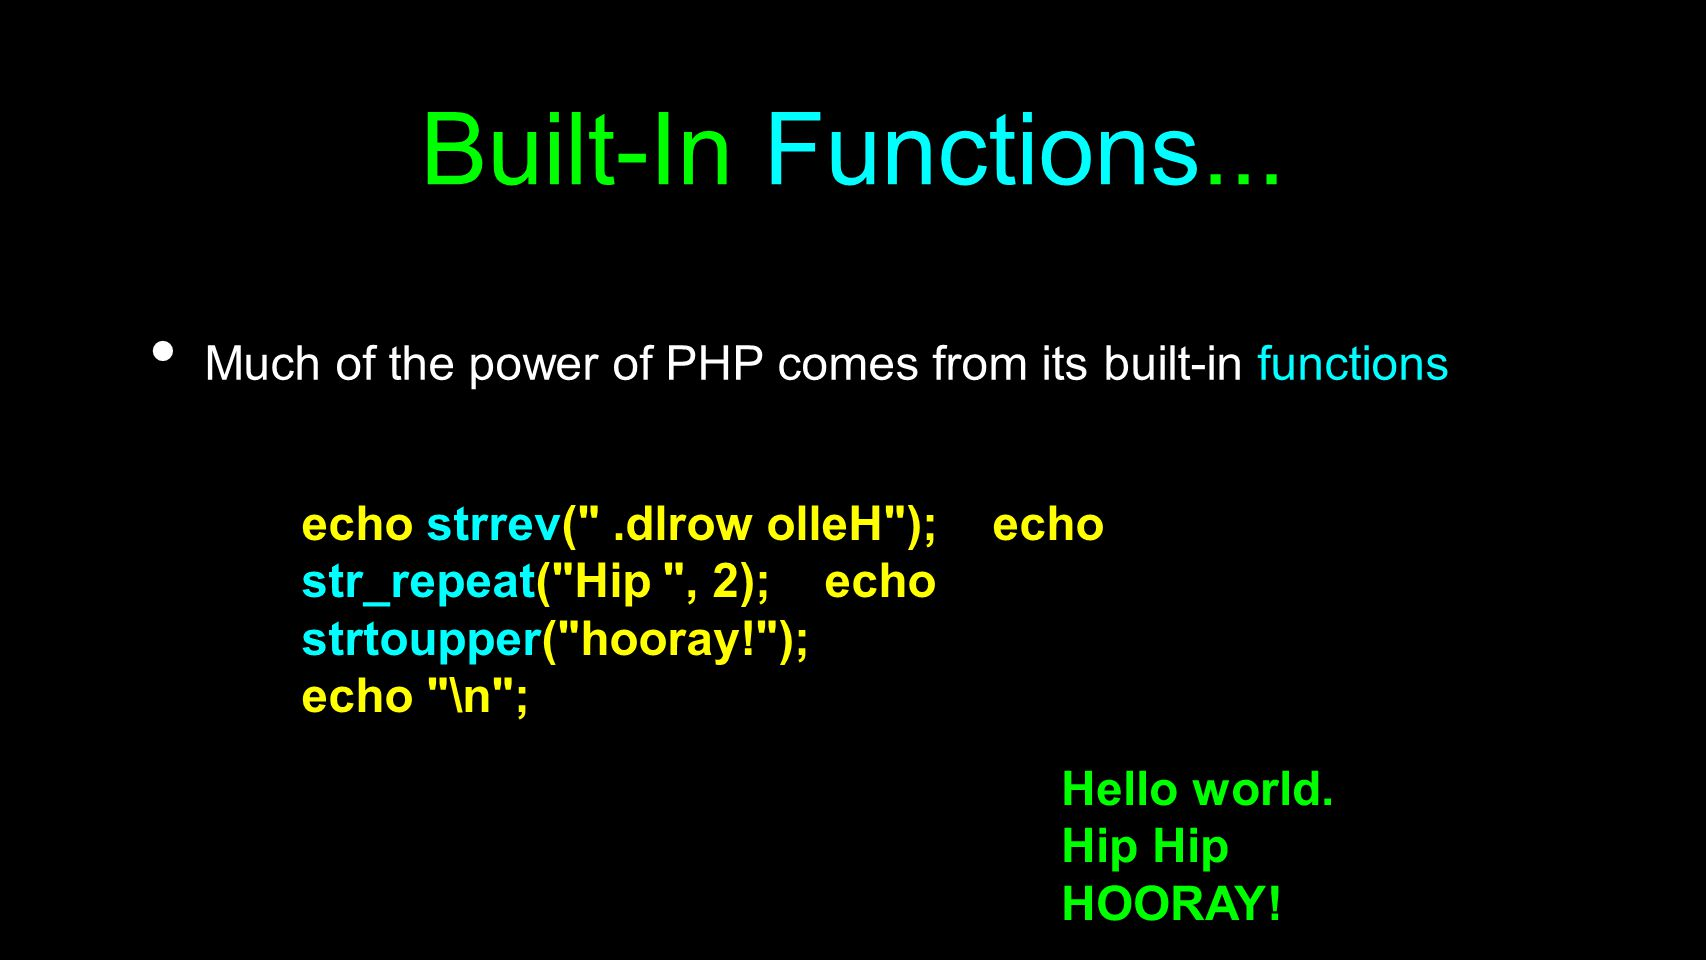 Built-In Functions... Much of the power of PHP comes from its built-in functions.